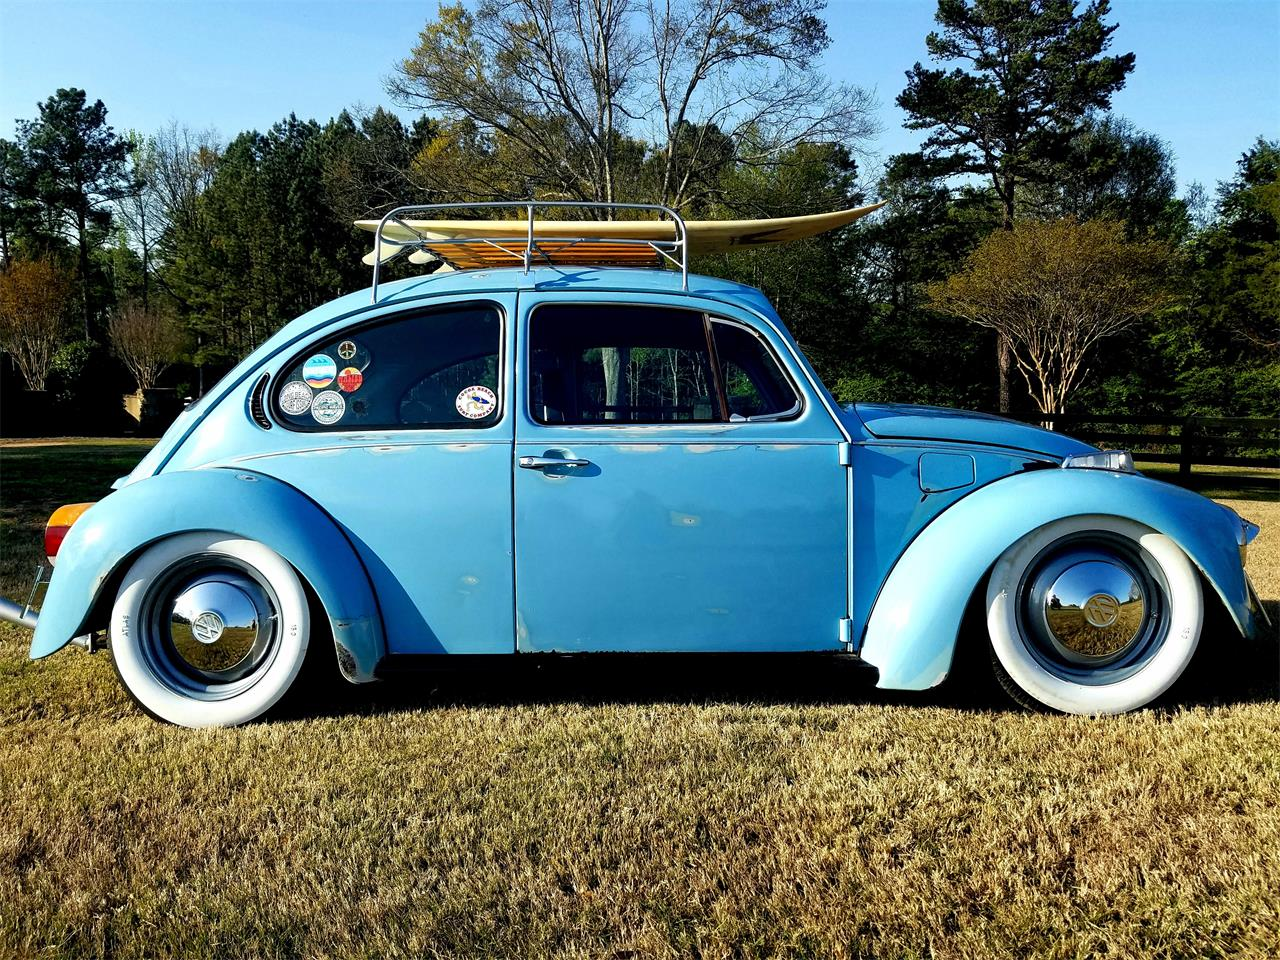 Vw For Sale >> 1974 Volkswagen Beetle For Sale Classiccars Com Cc 1086076